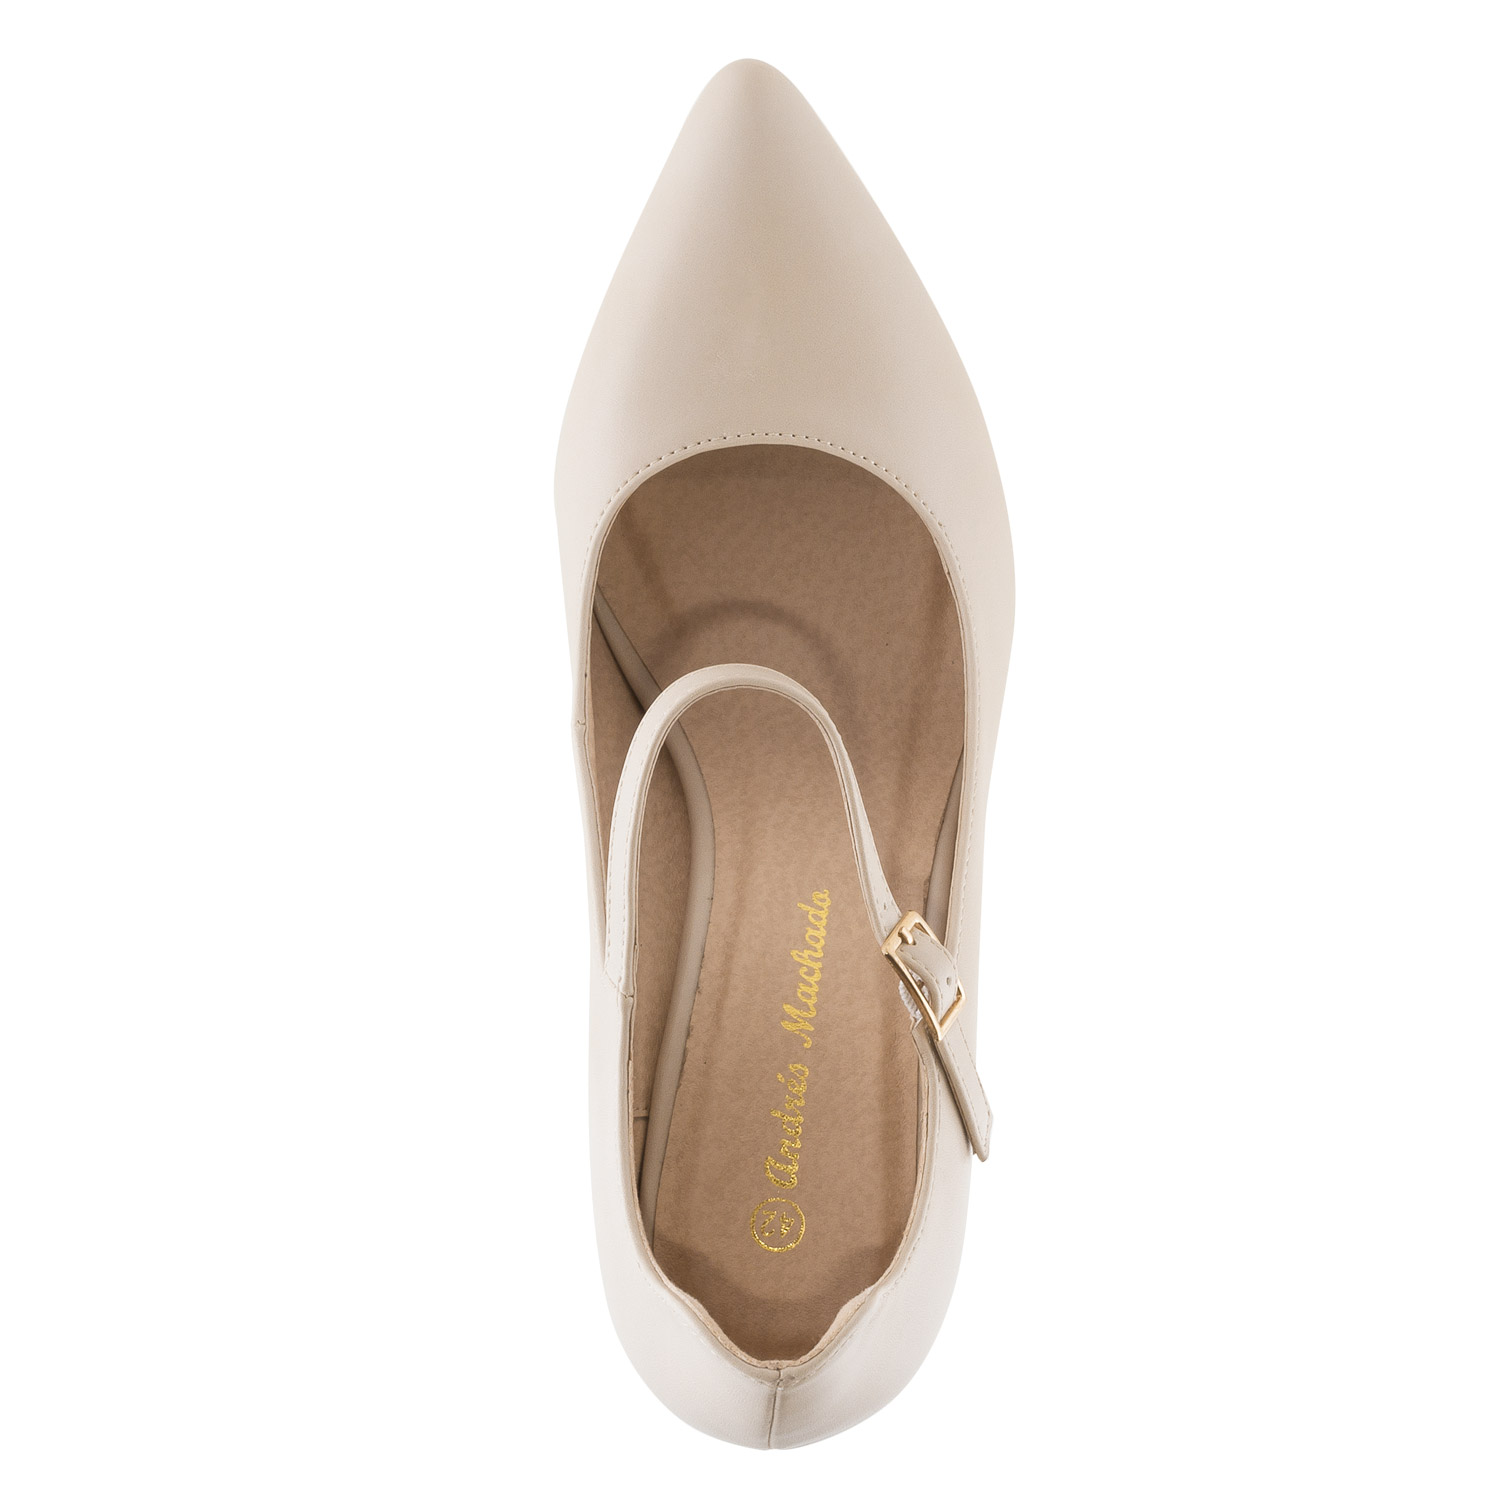 Escarpins Soft Beige Bout Pointu